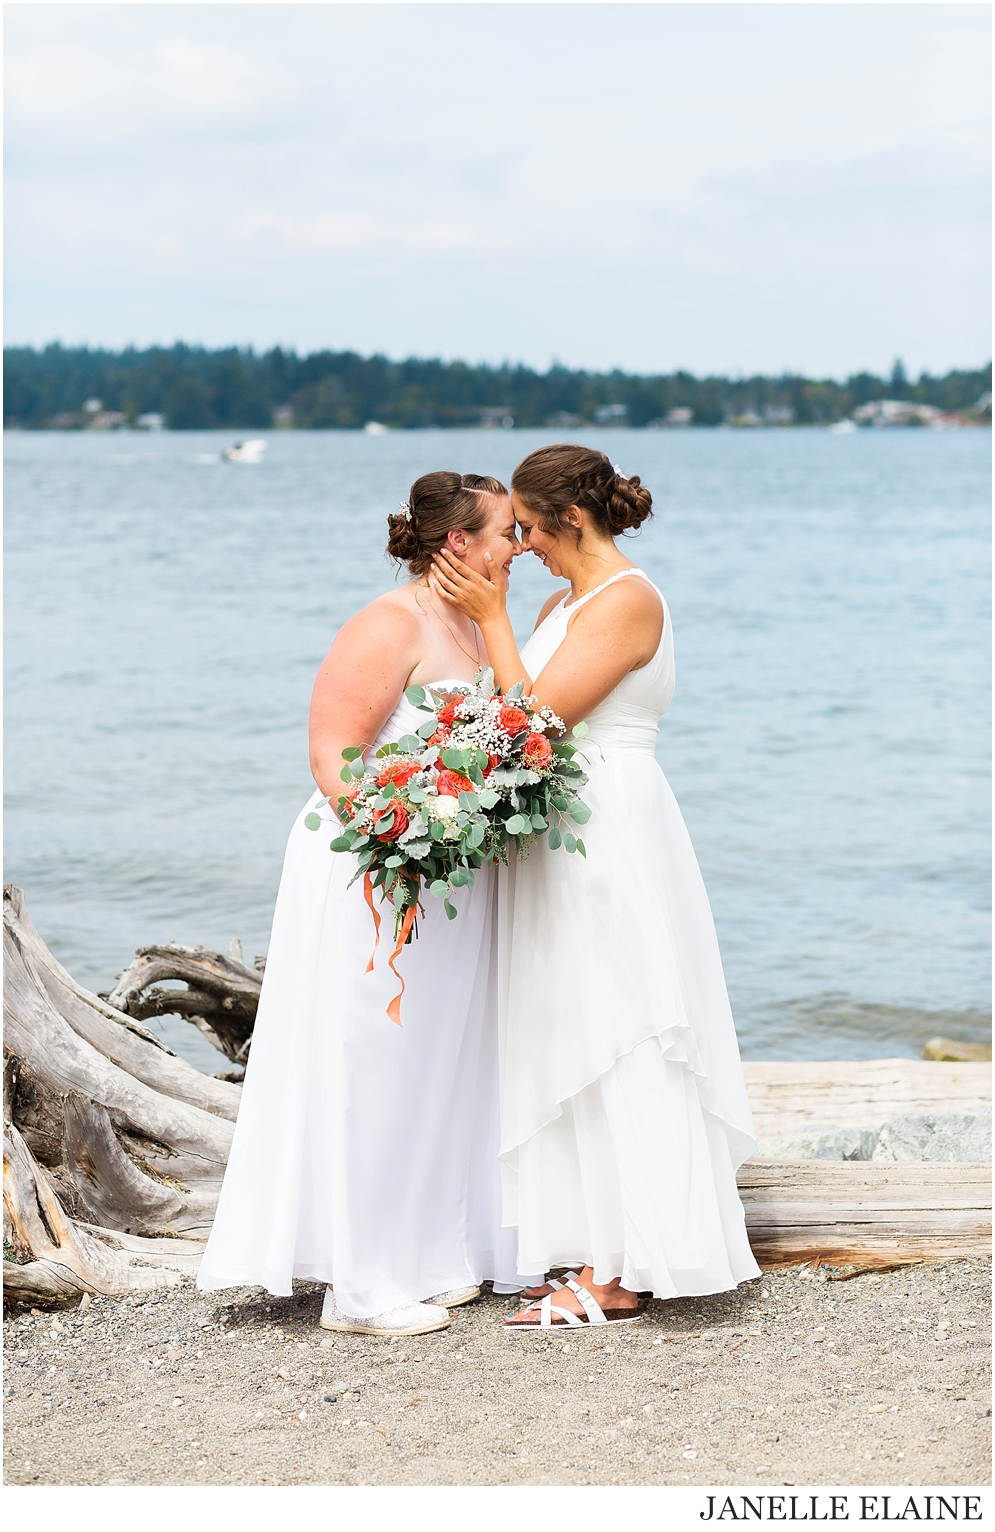 liz and christina lanning-first look and portraits-luther burbank park-janelle elaine photography-96.jpg